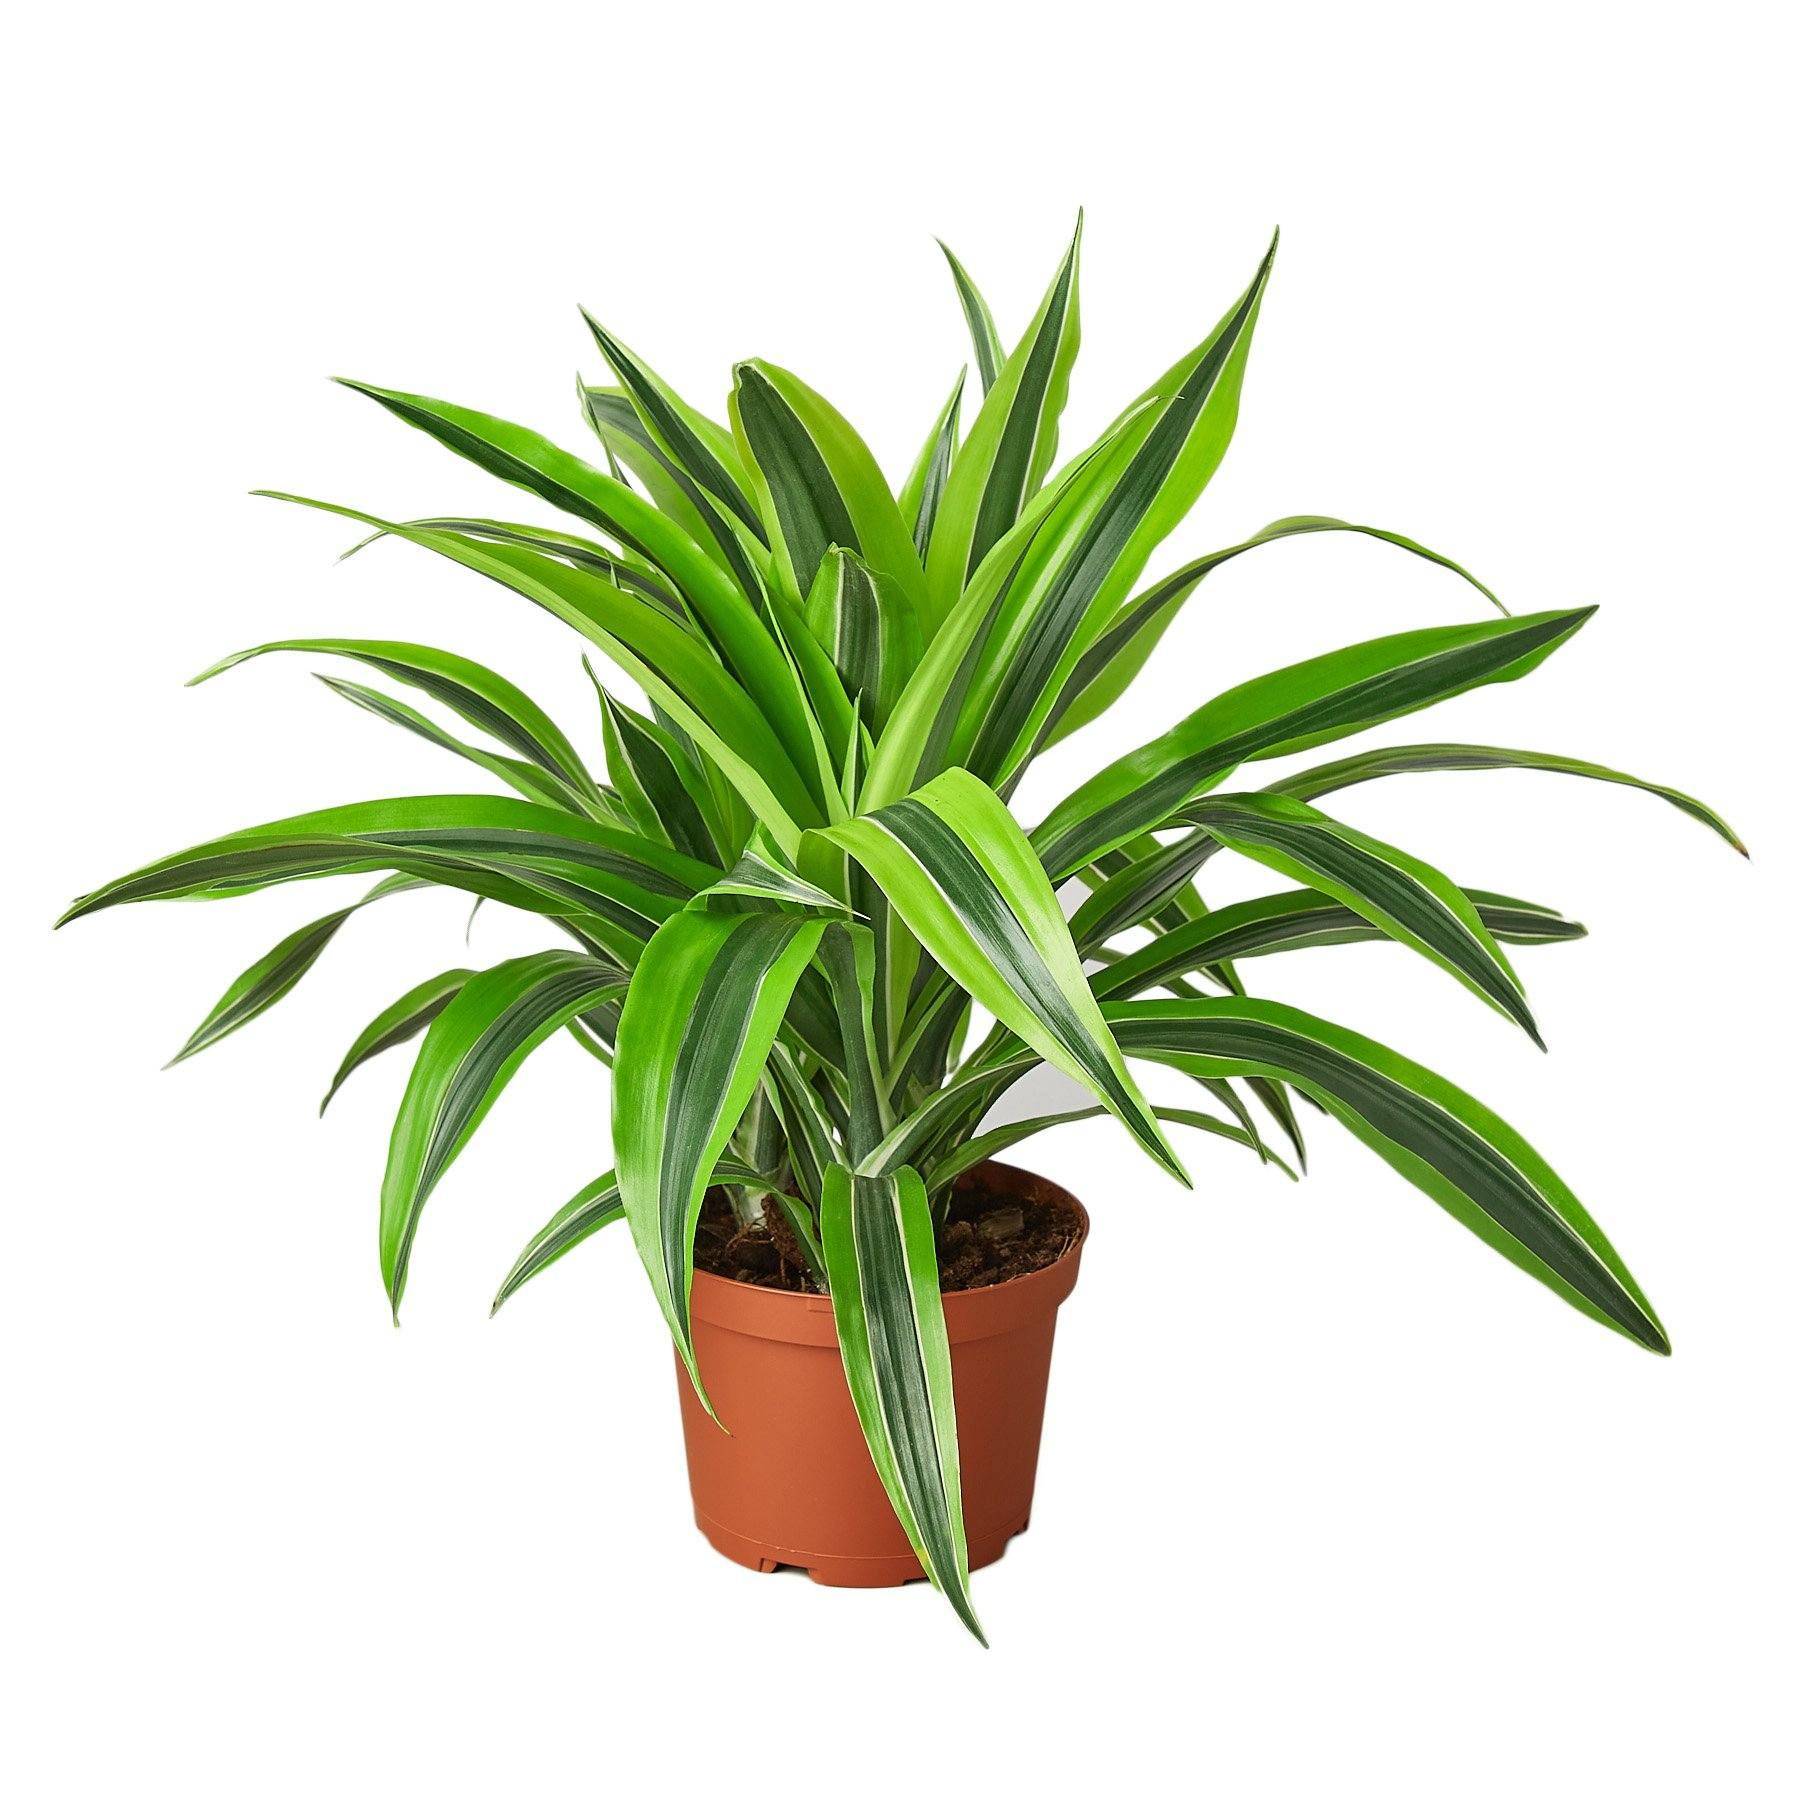 Dracaena Deremensis 'Lemon Surprise' Houseplant-SproutSouth-Indoor Plants